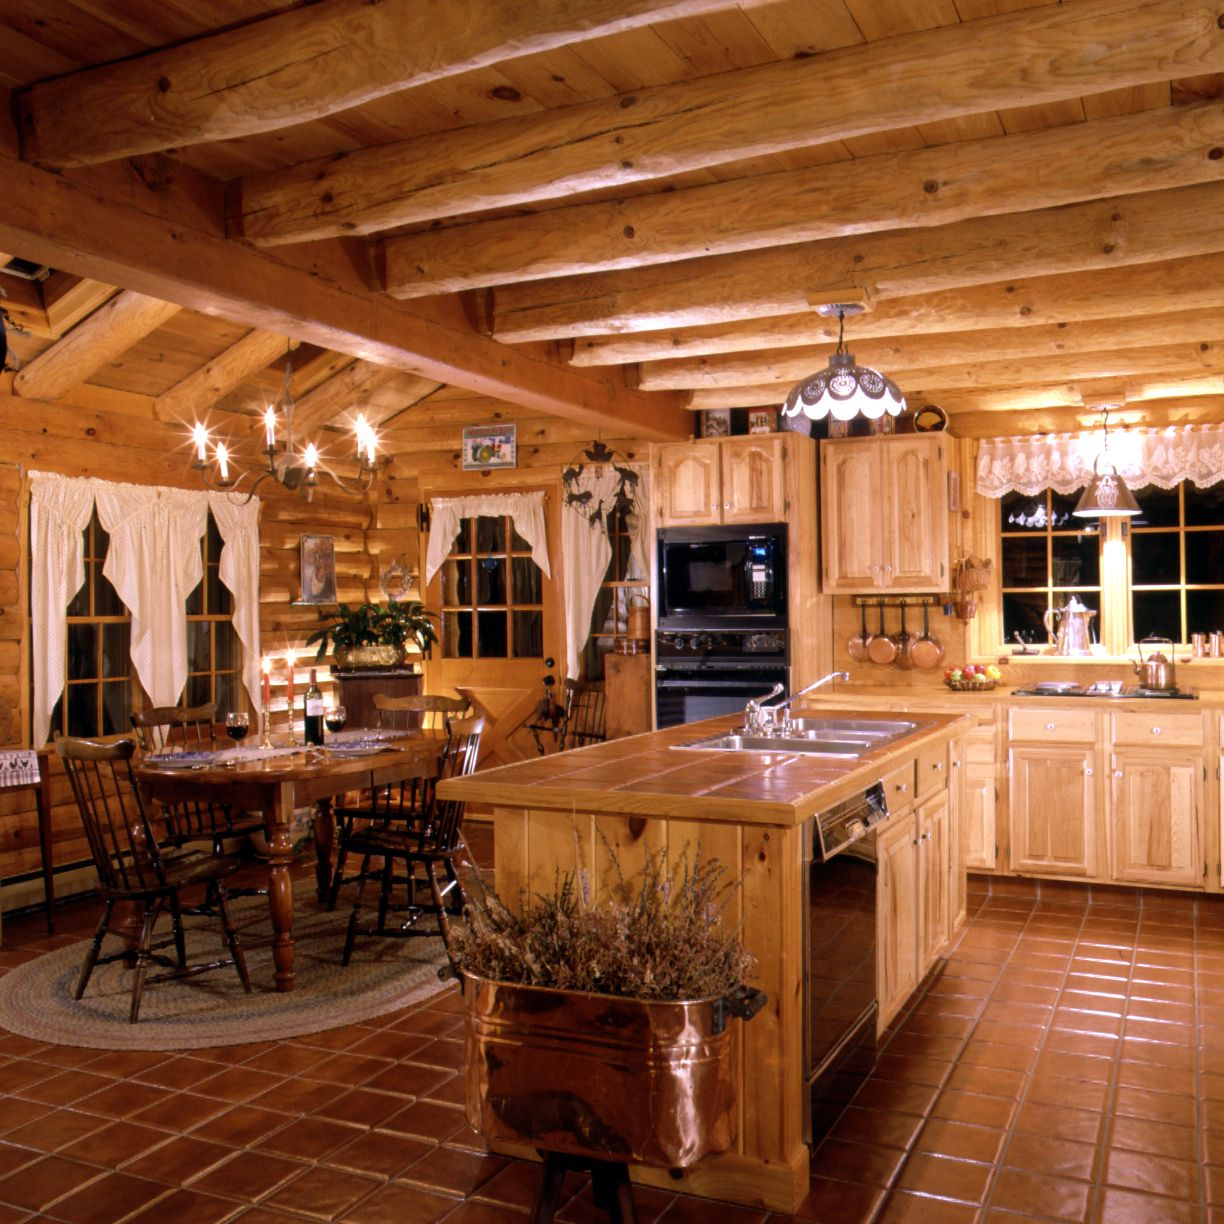 Log Home Kitchen Counter Choices Log Home Kitchens Log Cabin Kitchens Log Home Kitchen